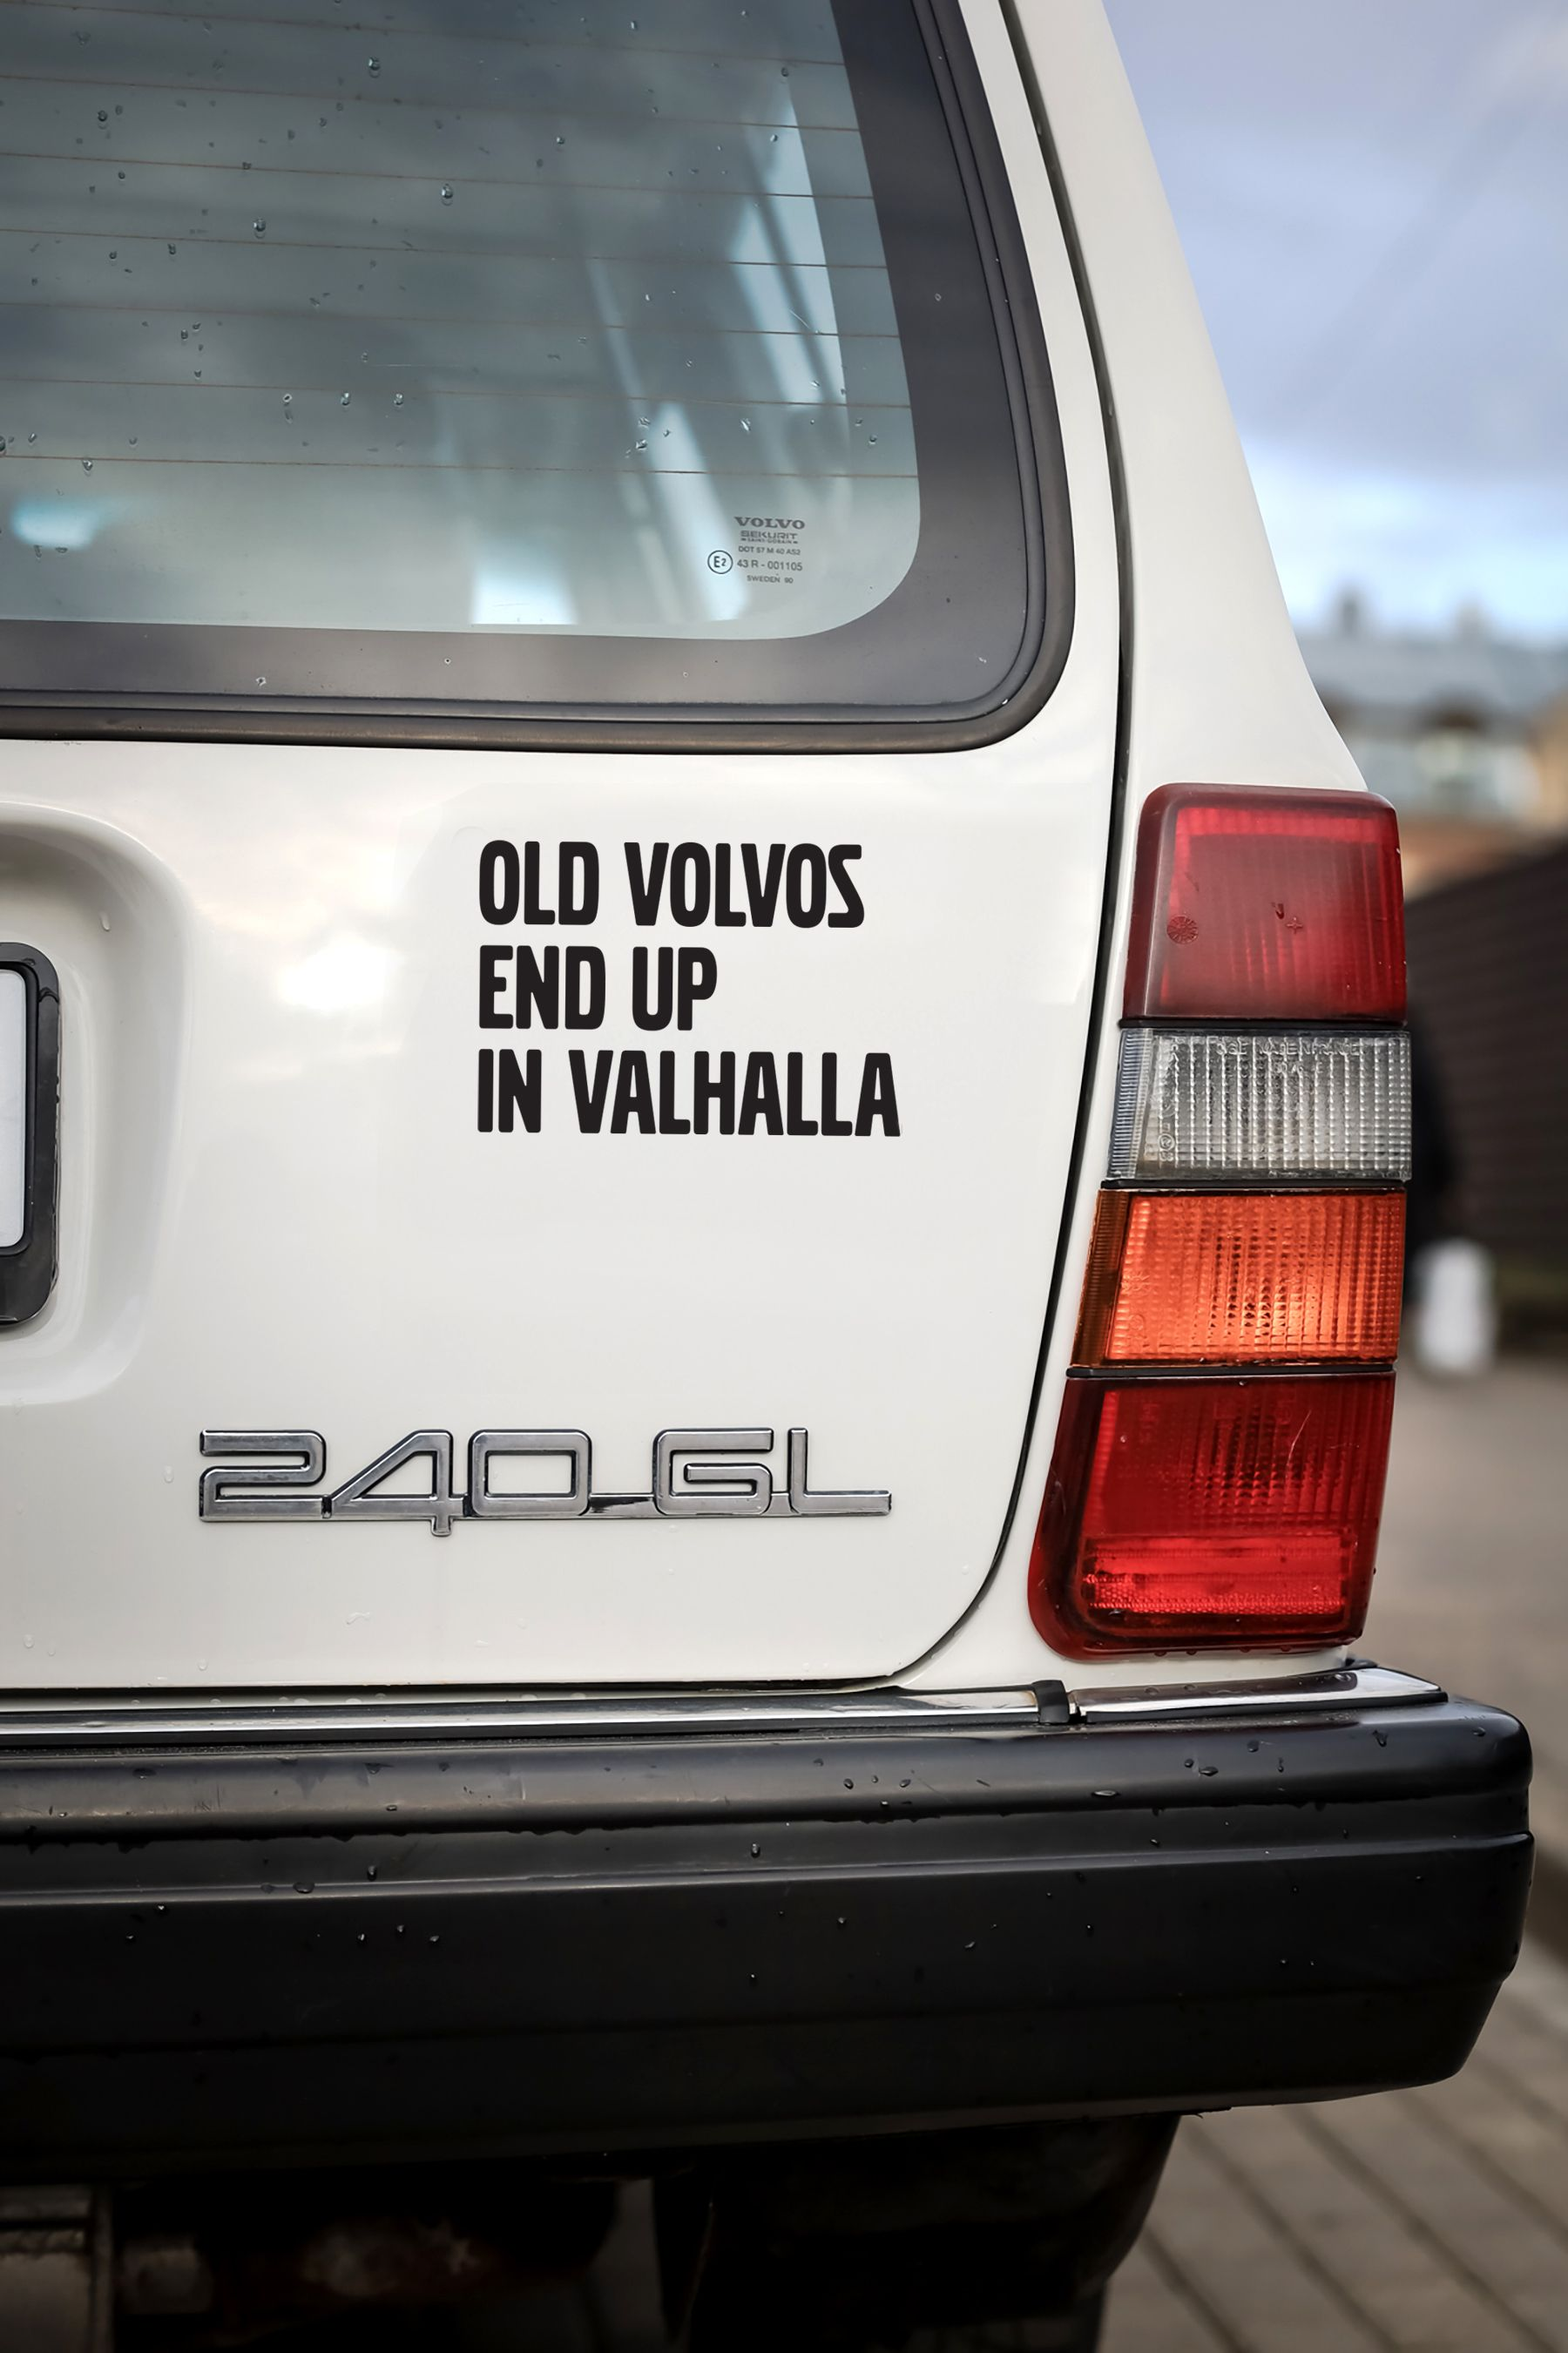 Stickers For Volvo Vikings Sticker Old Volvos End Up In Etsy Volvo Car Stickers Vinyl Car Stickers [ 2701 x 1800 Pixel ]